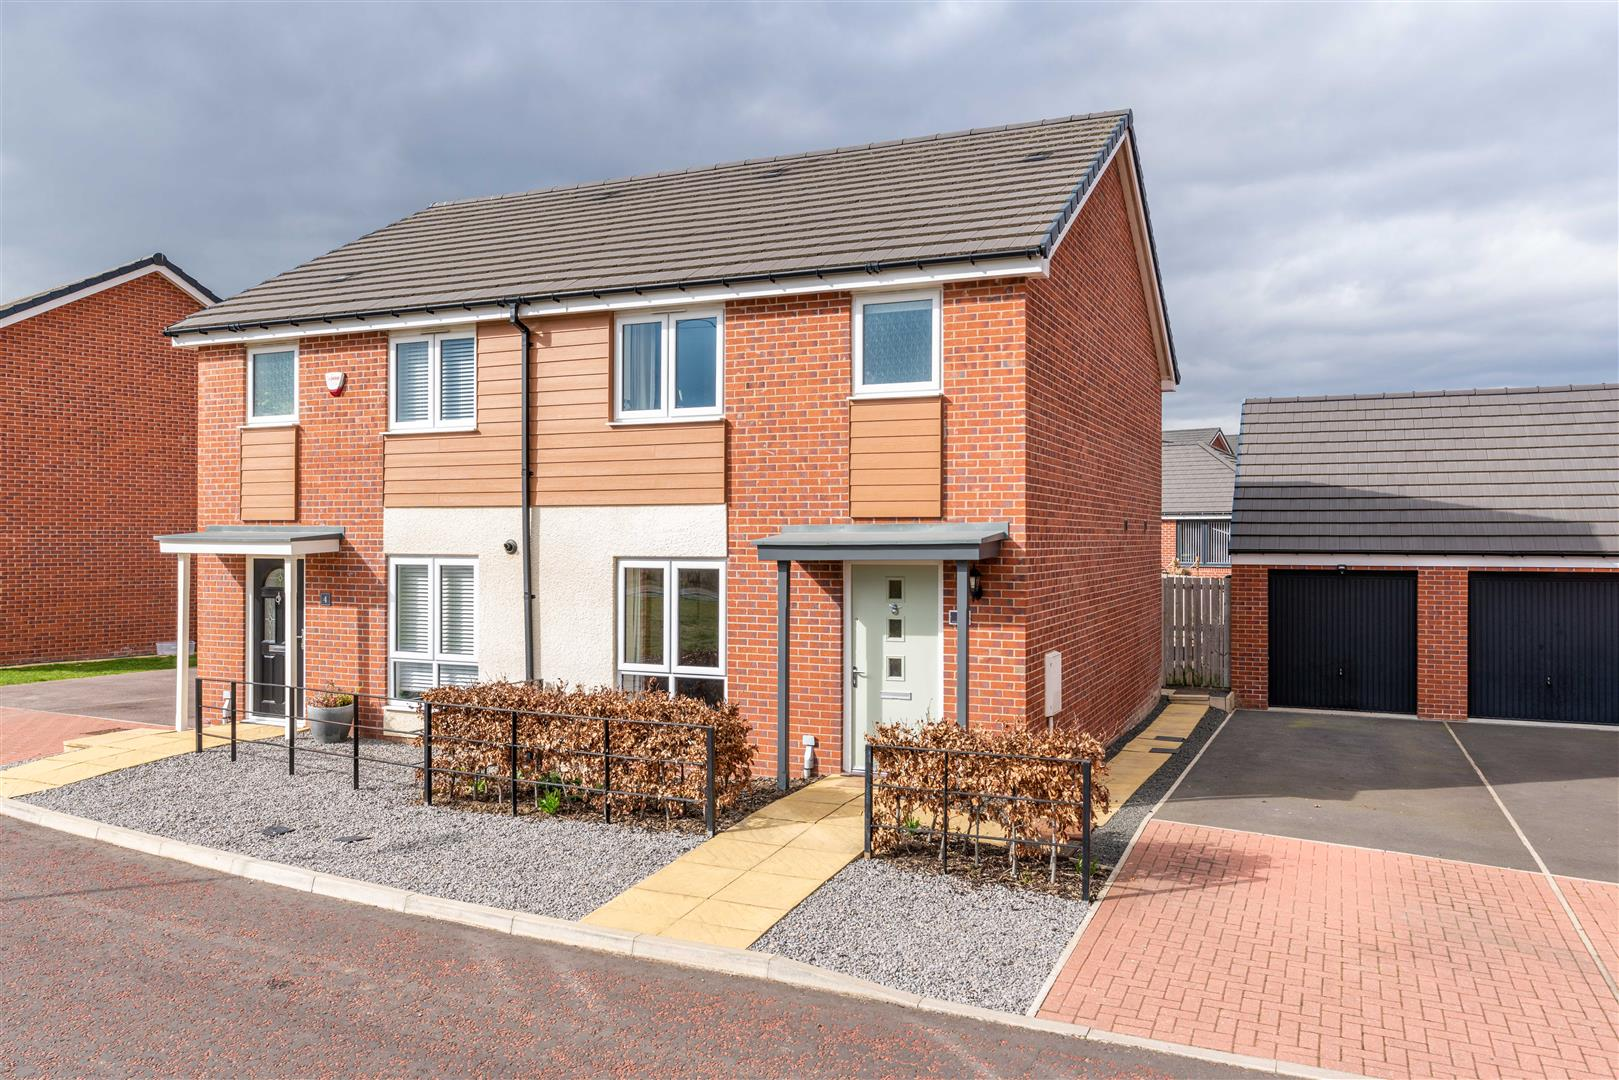 3 bed semi-detached house for sale in Newcastle Upon Tyne, NE13 9DE, NE13